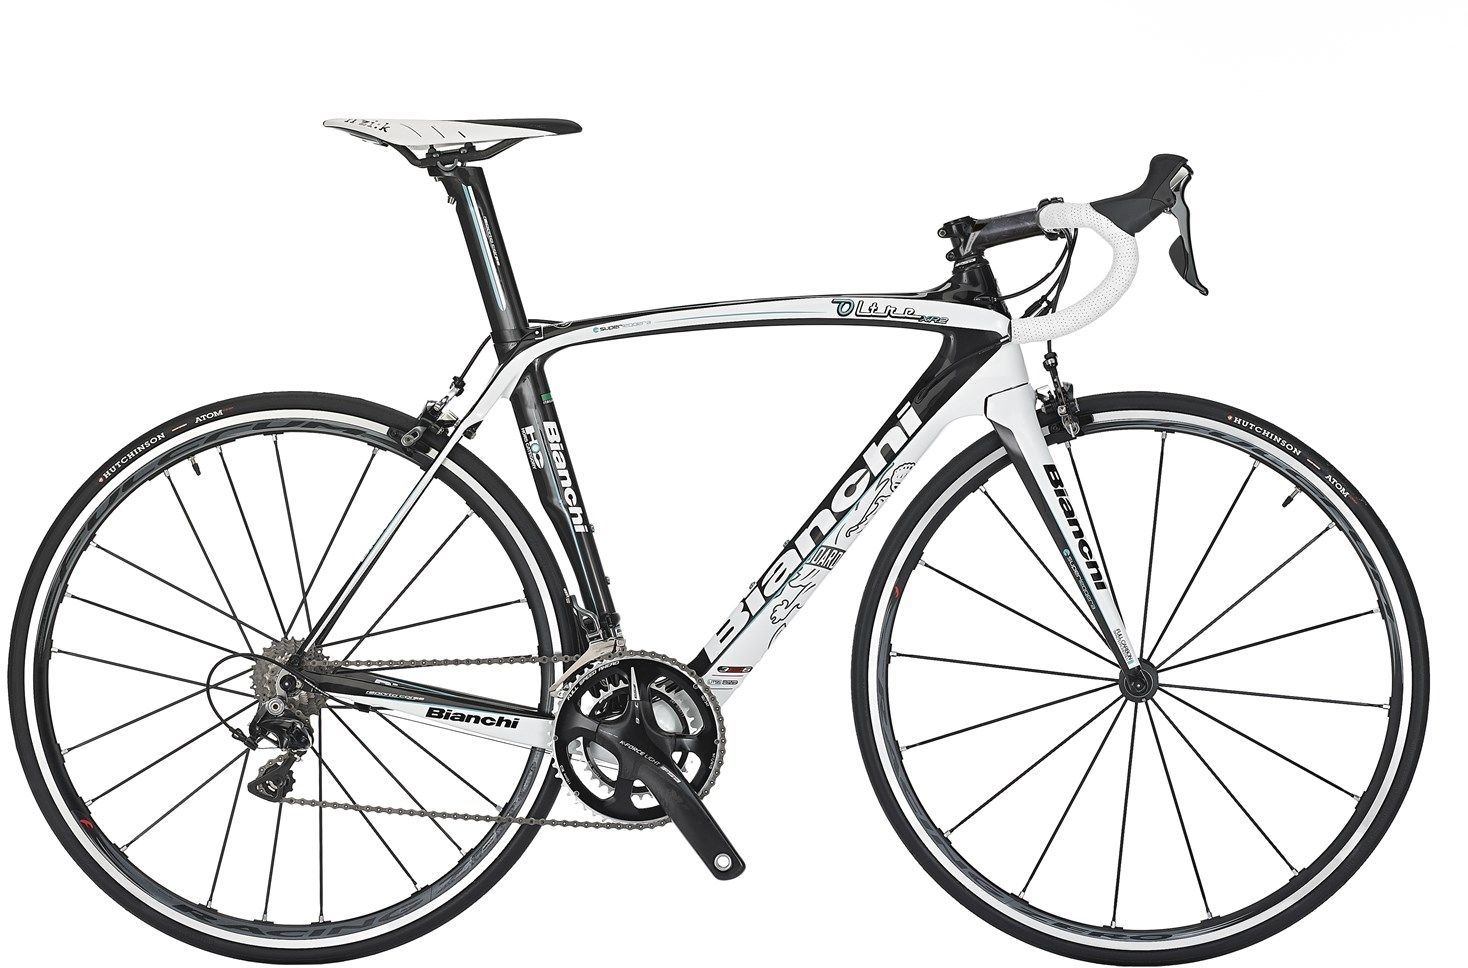 Bianchi Oltre Xr2 Shimano Dura Ace 11sp Compact 2014